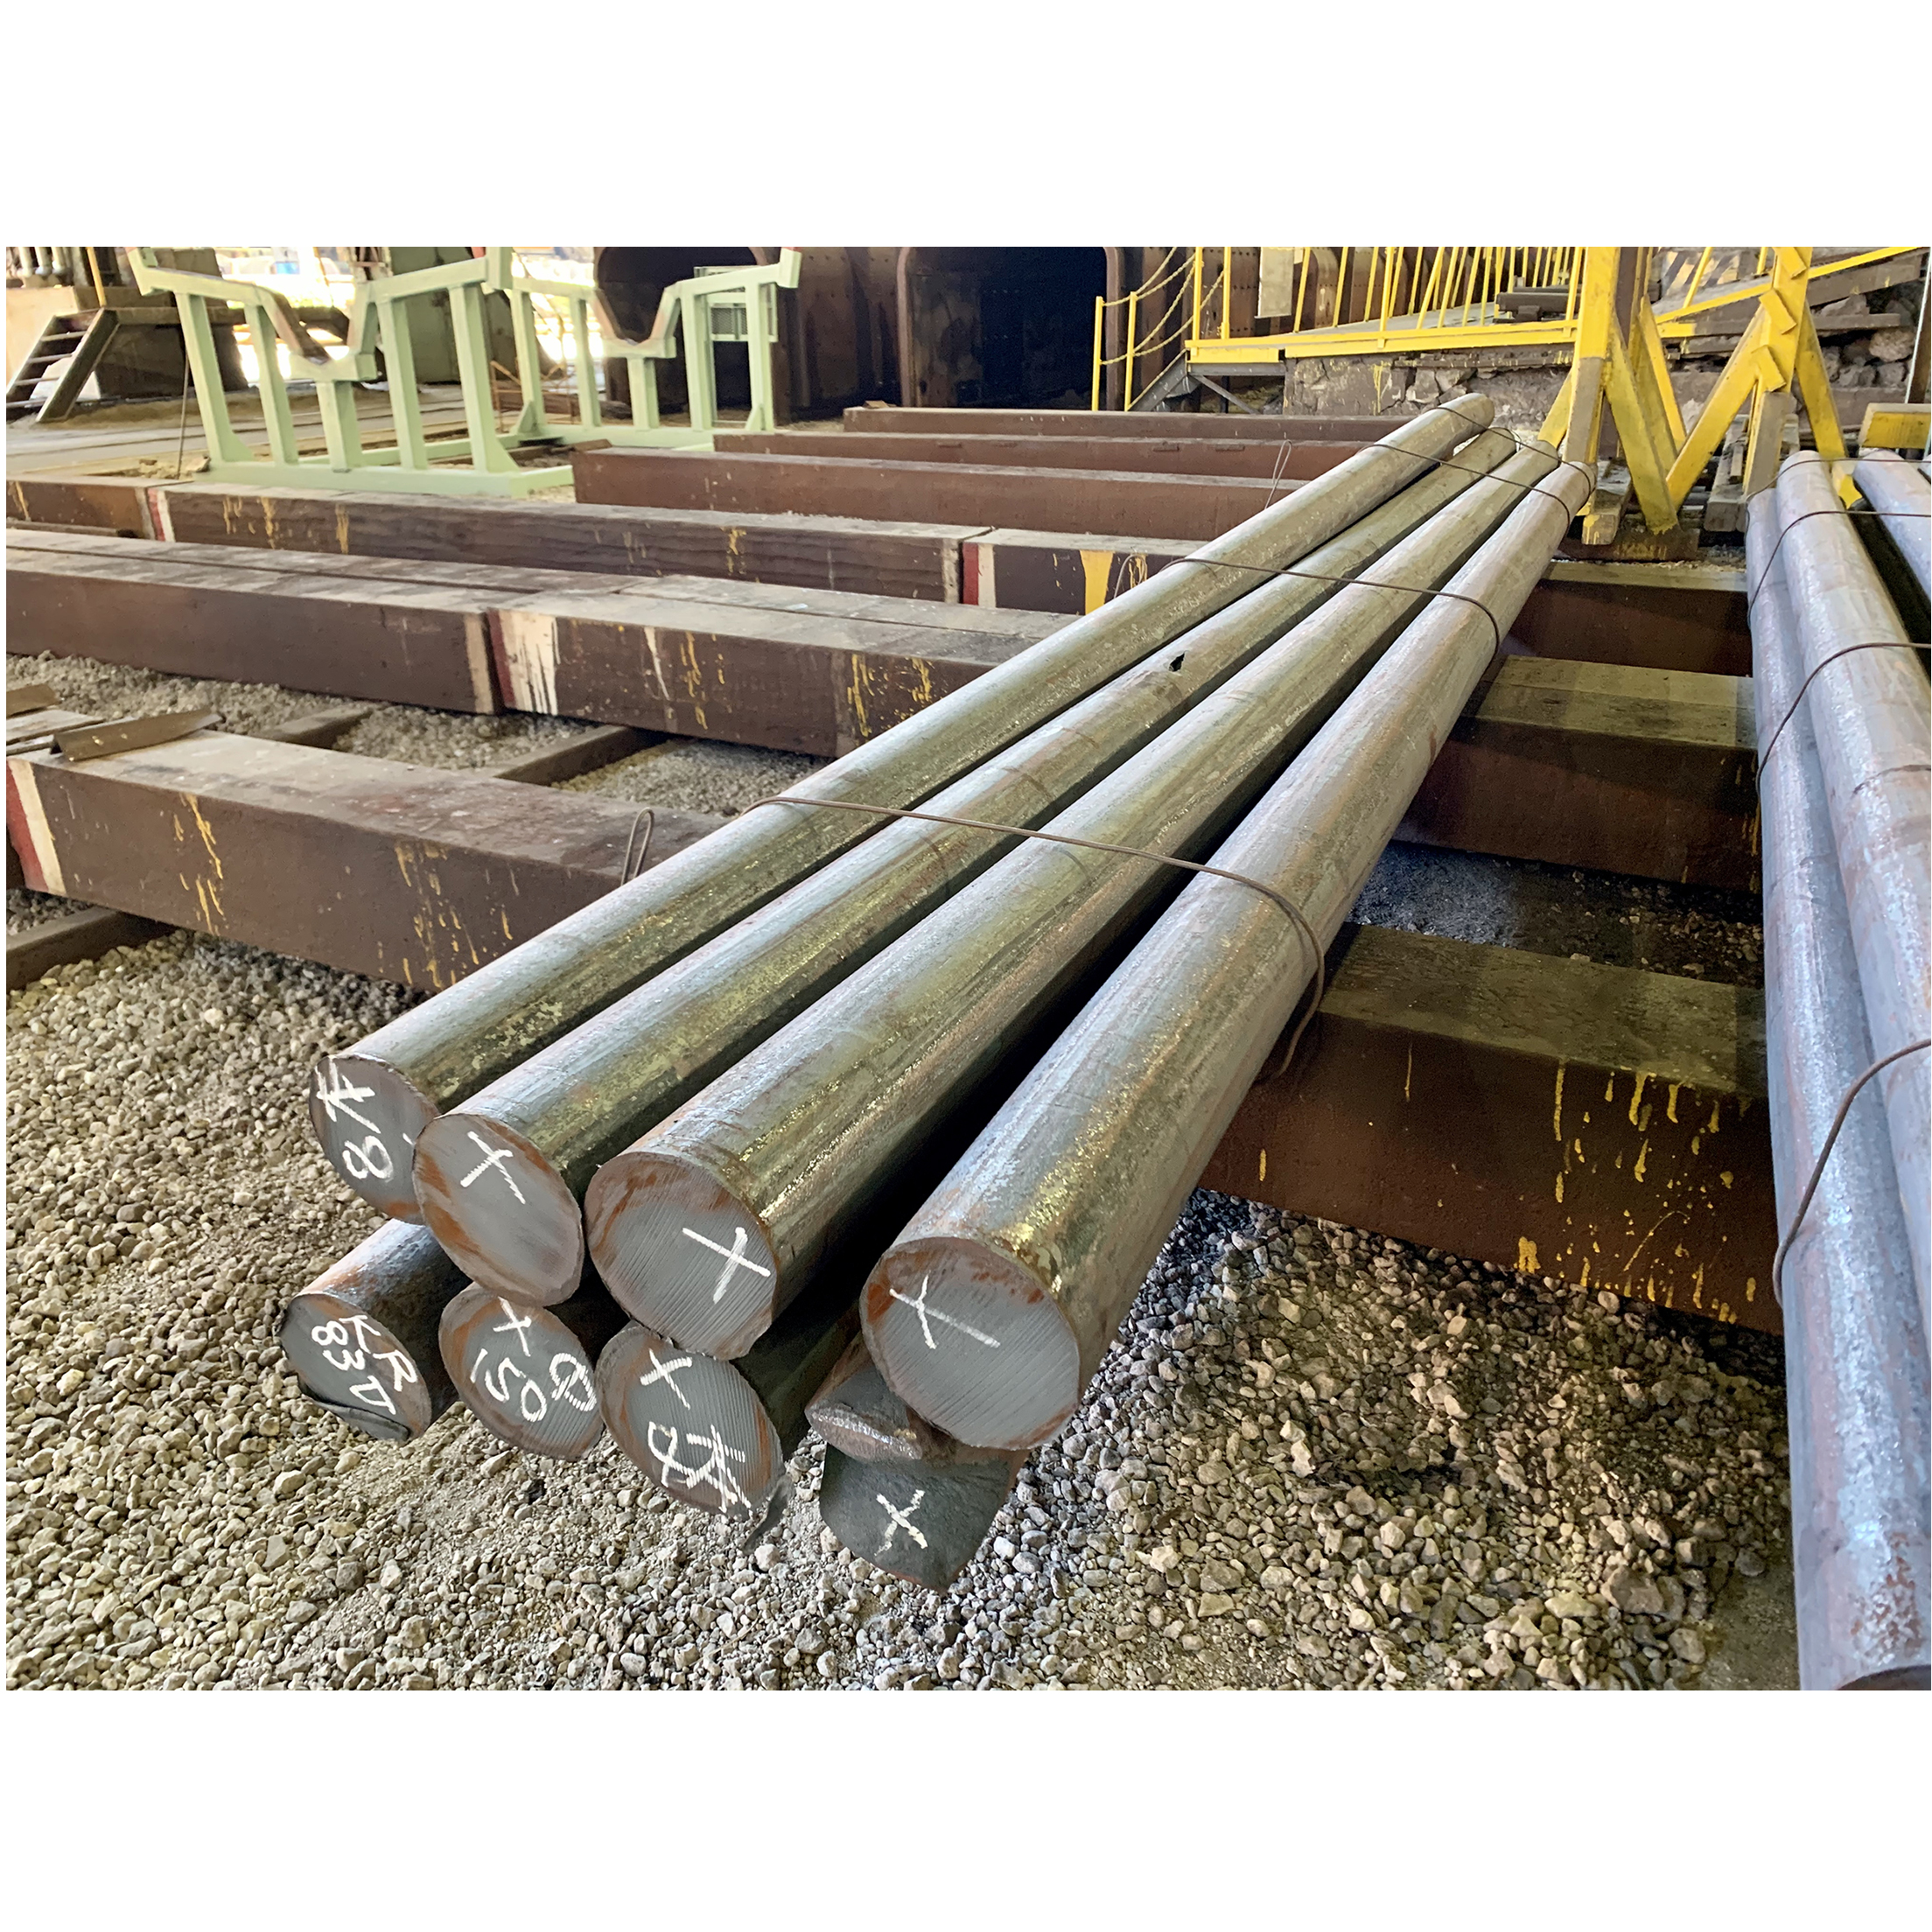 Secondary hot rolled construction stainless steel profile bar